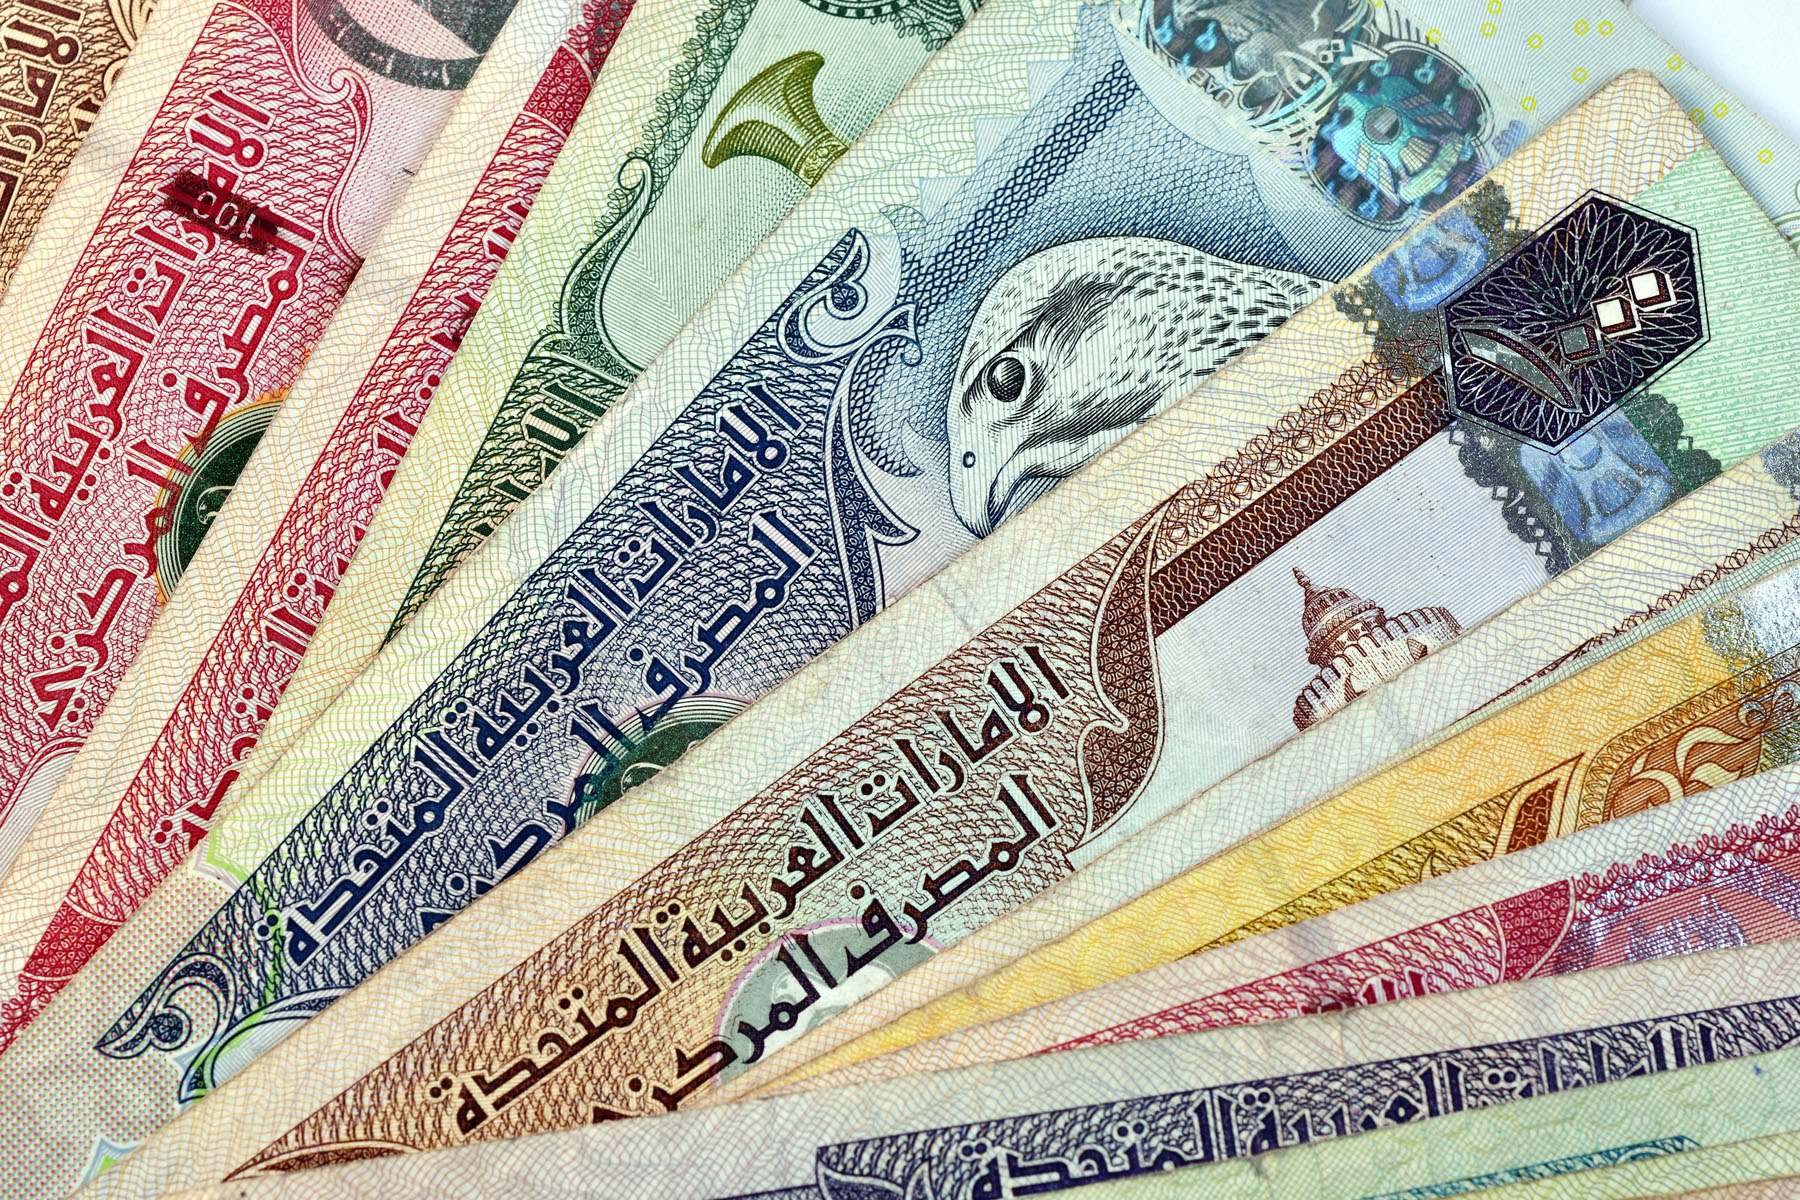 Dirham, the currency of the UAE